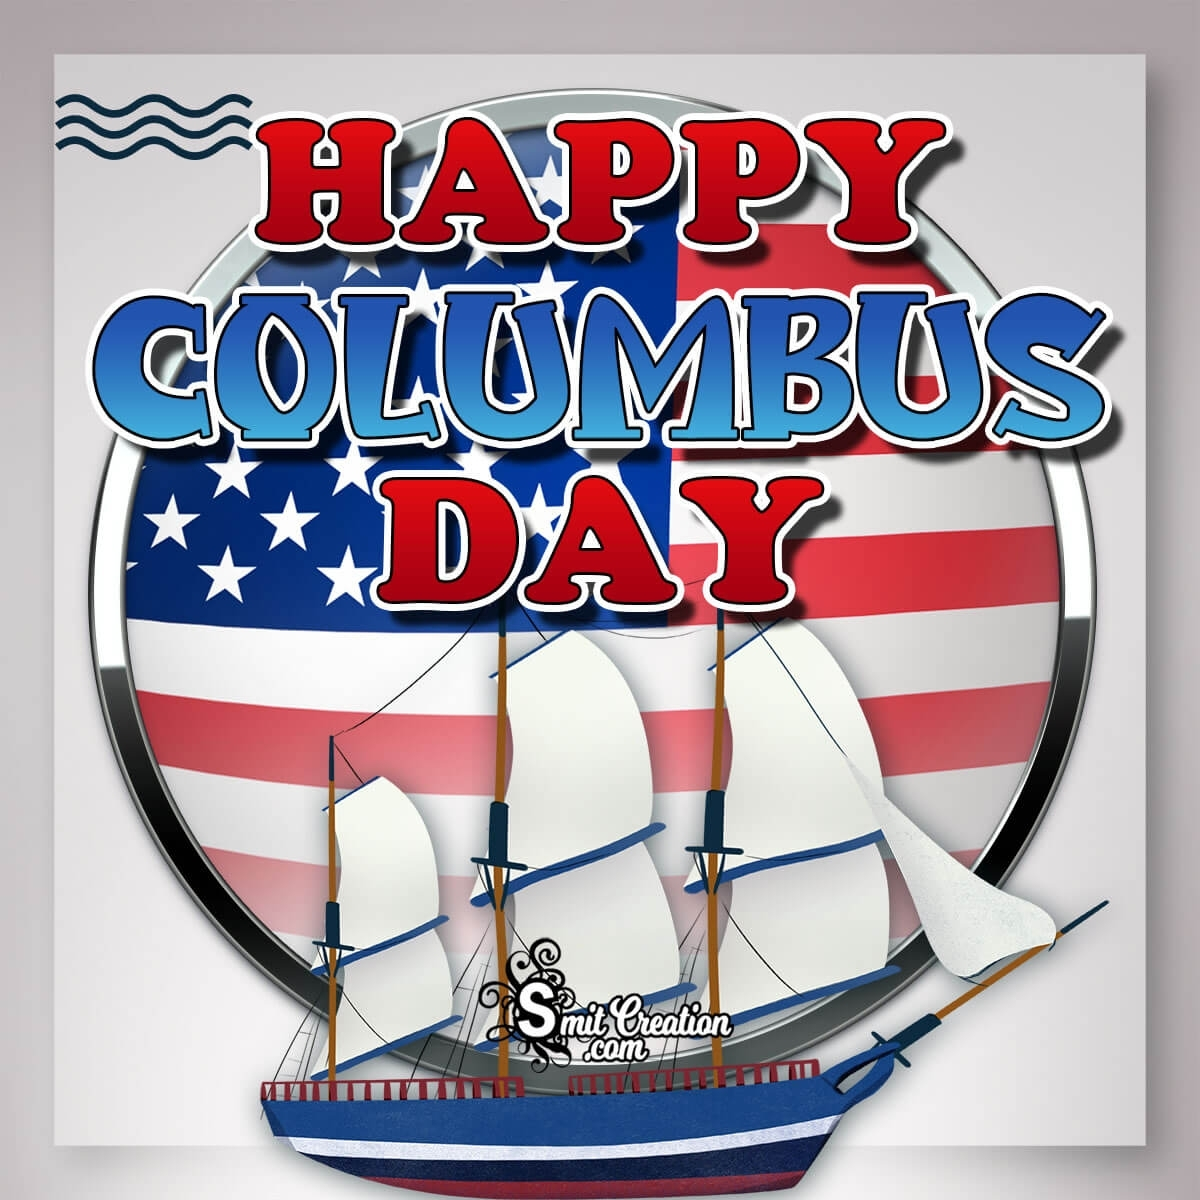 15 Columbus Day Images, Pictures and Graphics - SmitCreation.com